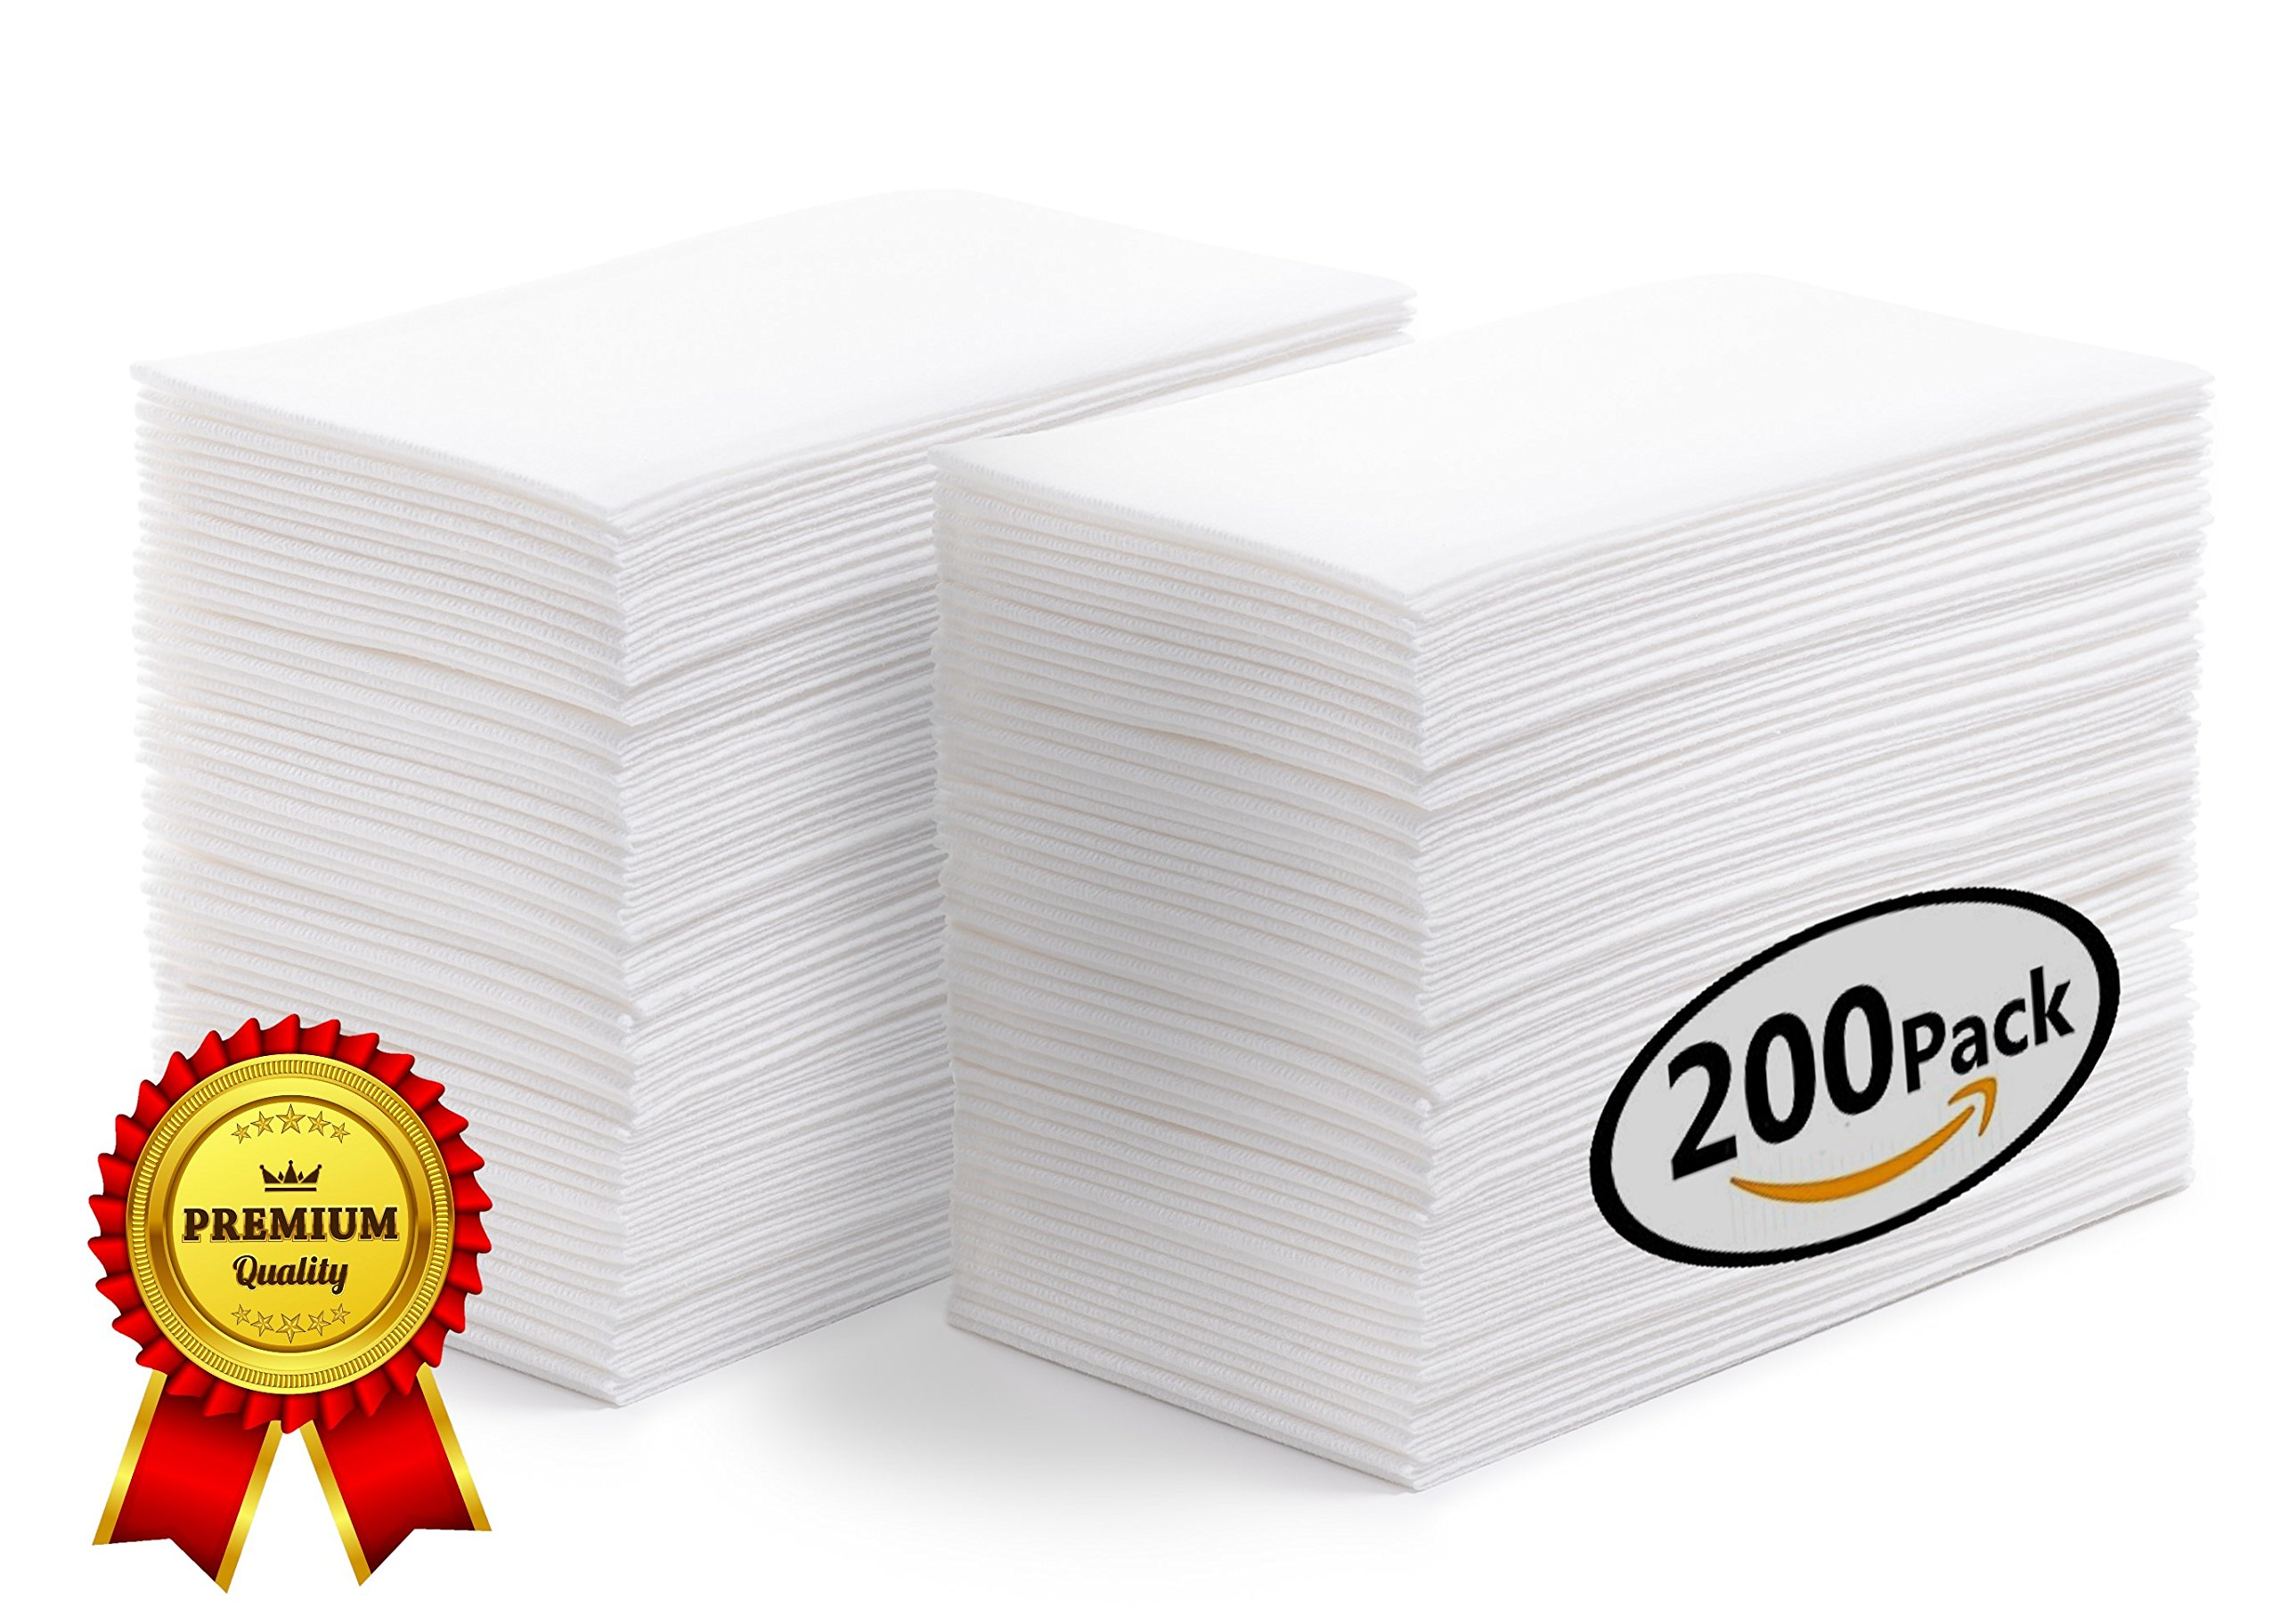 SOFTER Hand Towels | Guest Napkins | Disposable Dinner Napkins | Linen Feel Wedding Guest Towels White - Absorbent - Durable - Paper Hand Towels For Events Bathroom Kitchen Office 200 BULK VALUE PK by Prestee